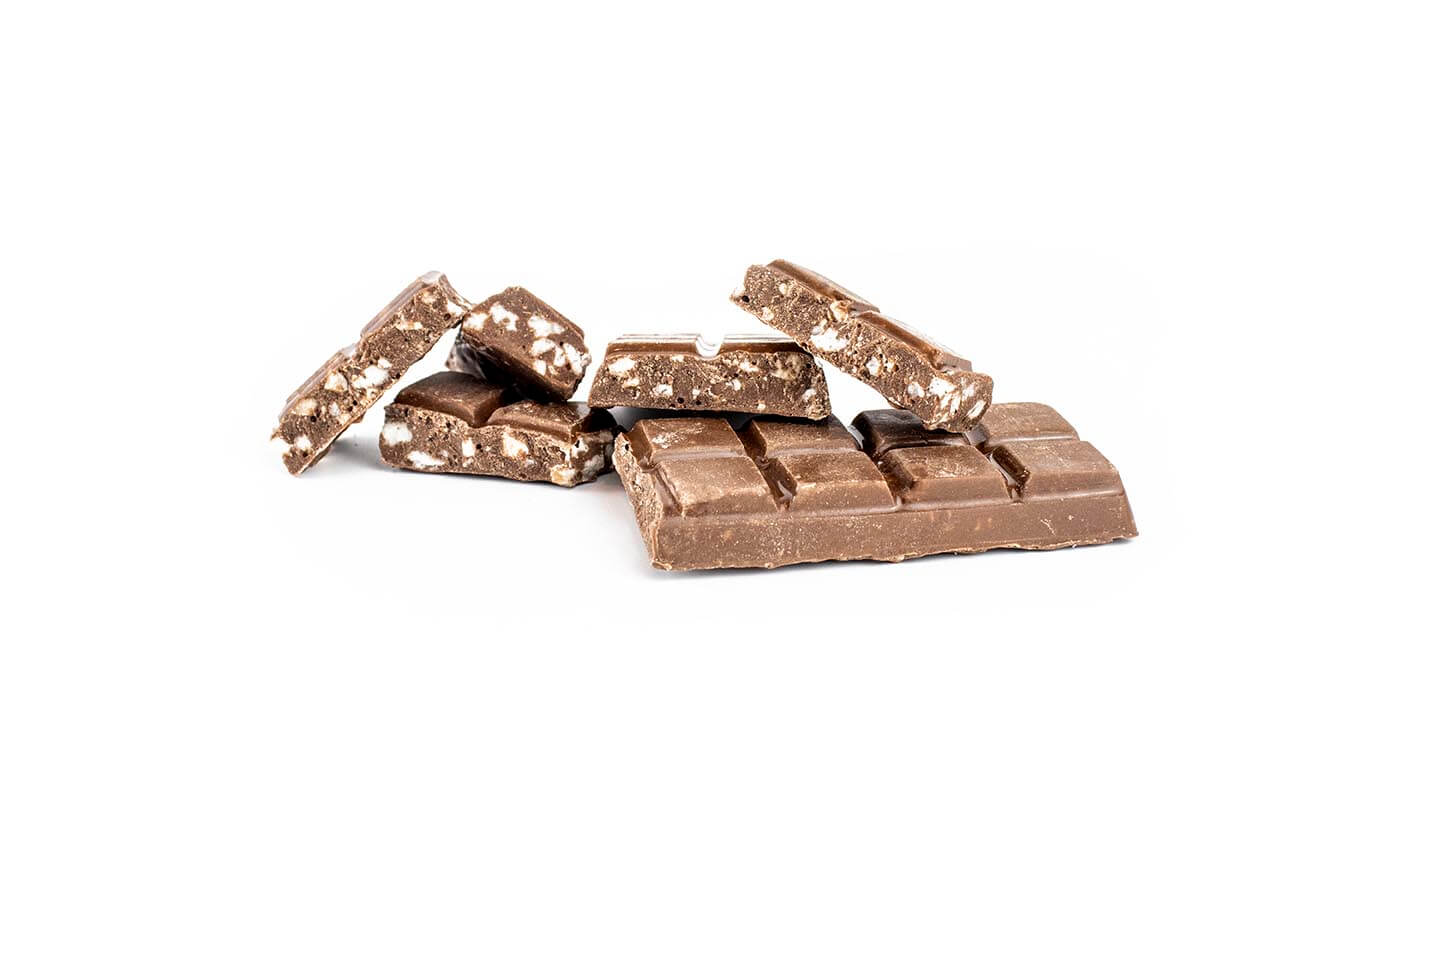 White Peppermint Soft Kibble in Choc (milk choc bar and pieces)